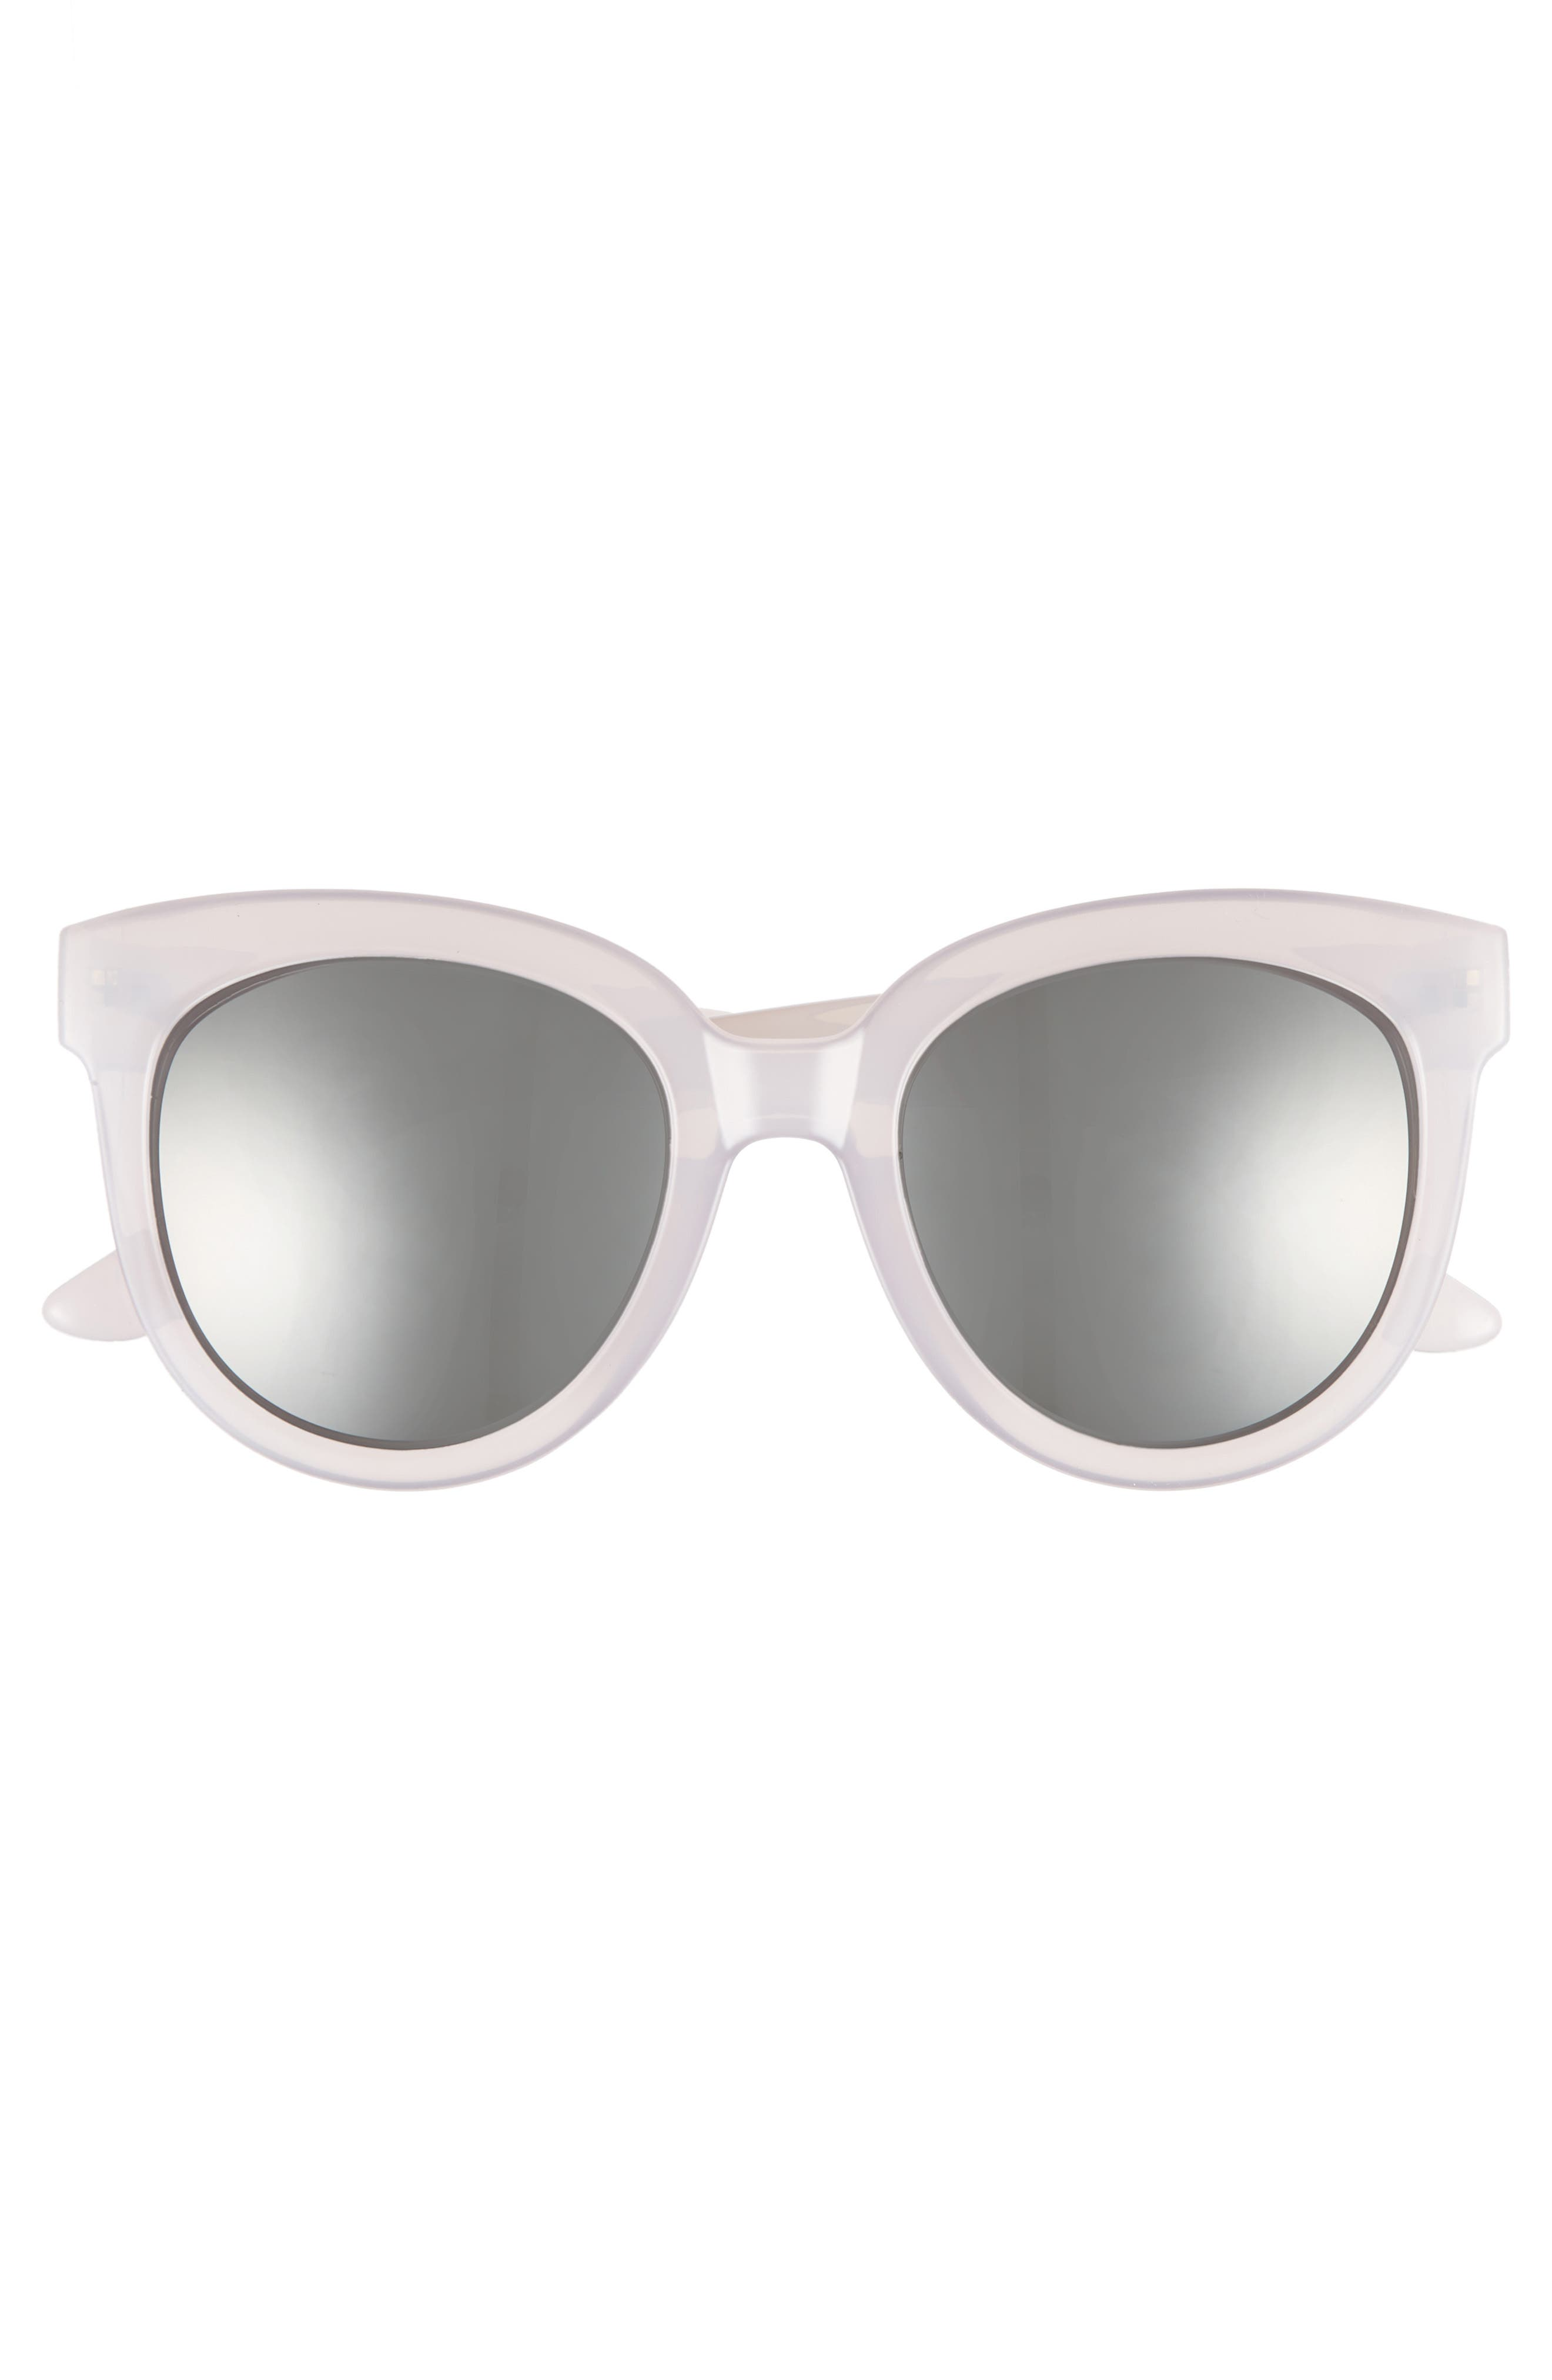 53mm Frosted Cat Eye Sunglasses,                             Alternate thumbnail 3, color,                             Milky Gray/ Silver